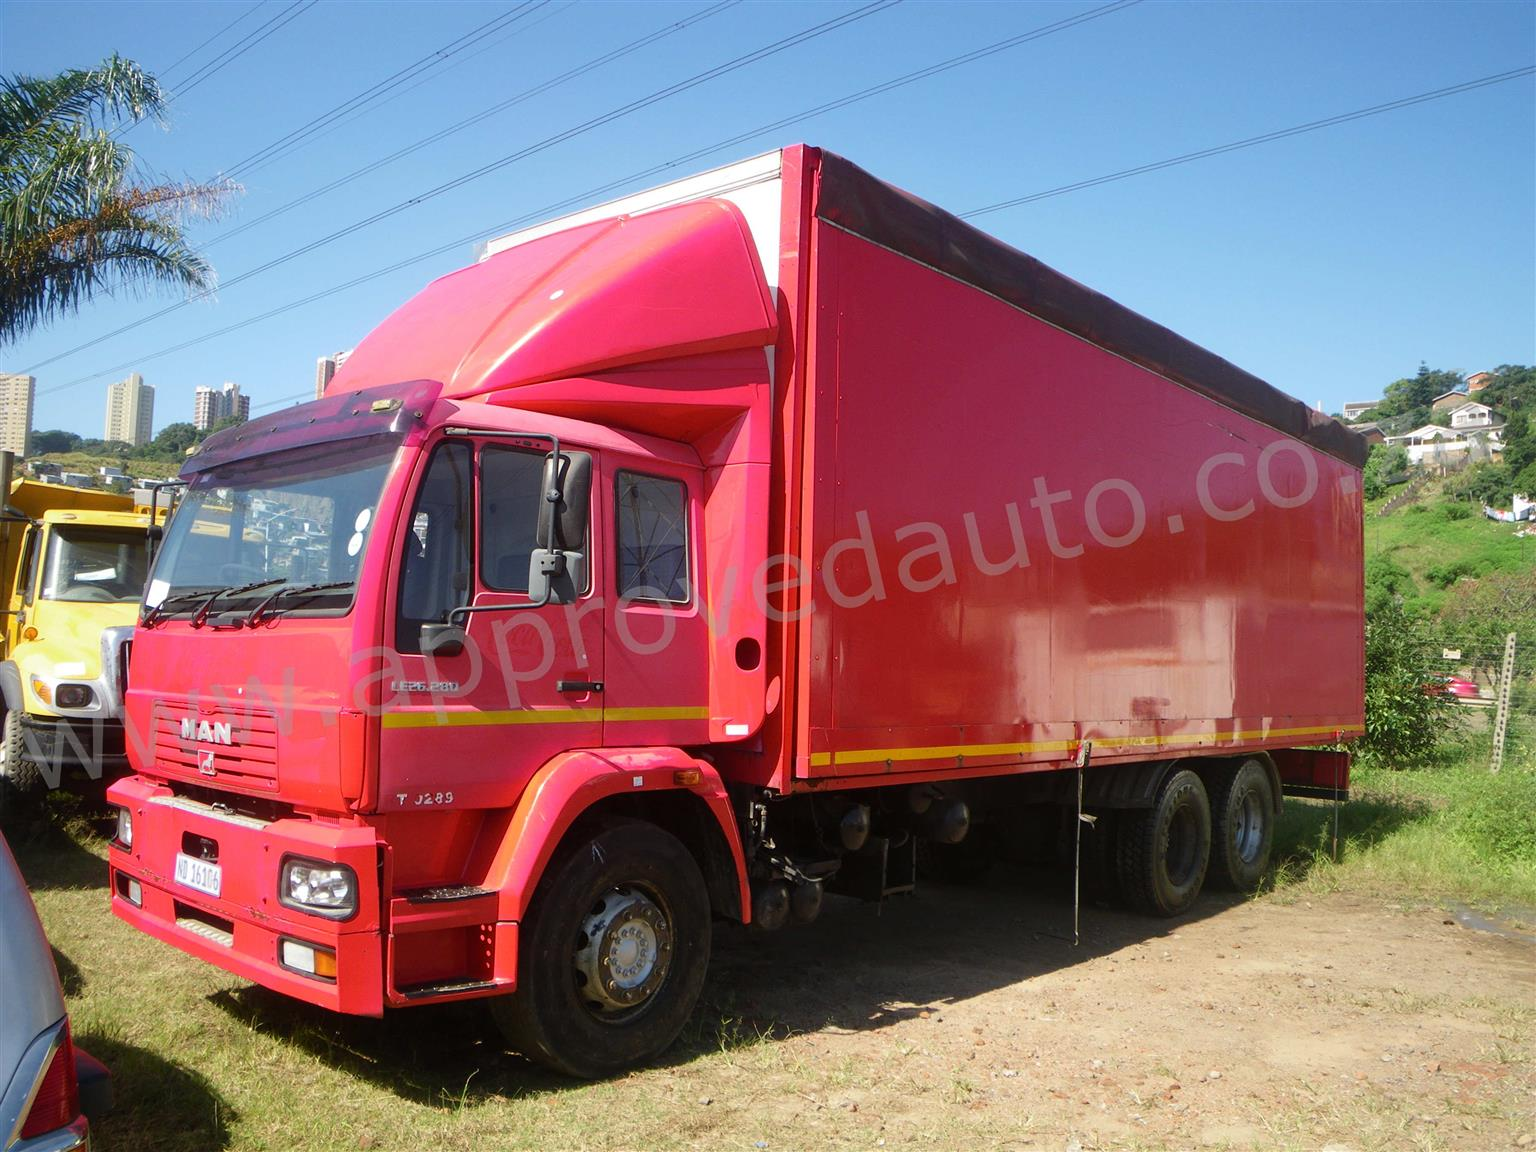 2006 MAN M2000 USED Stage truck for sale in Durban KZN – AA3029